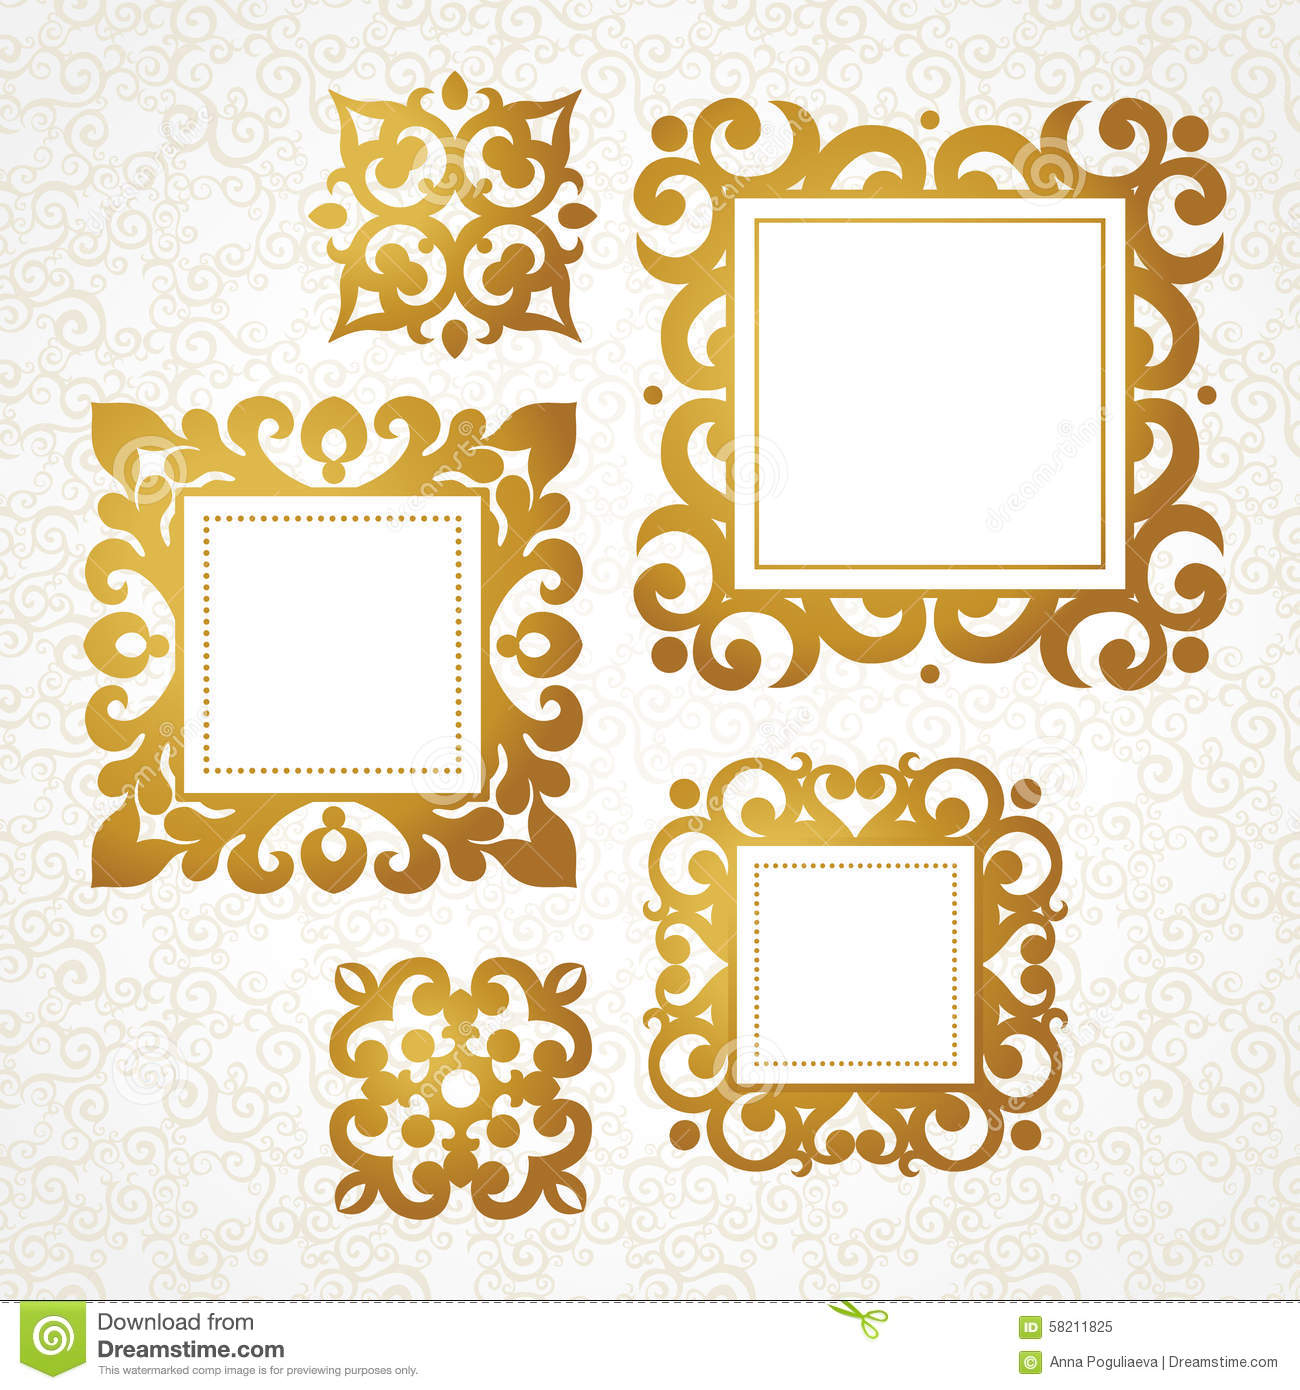 Marcos Decorativos Set Of Vector Decorative Frames In Victorian Style Stock